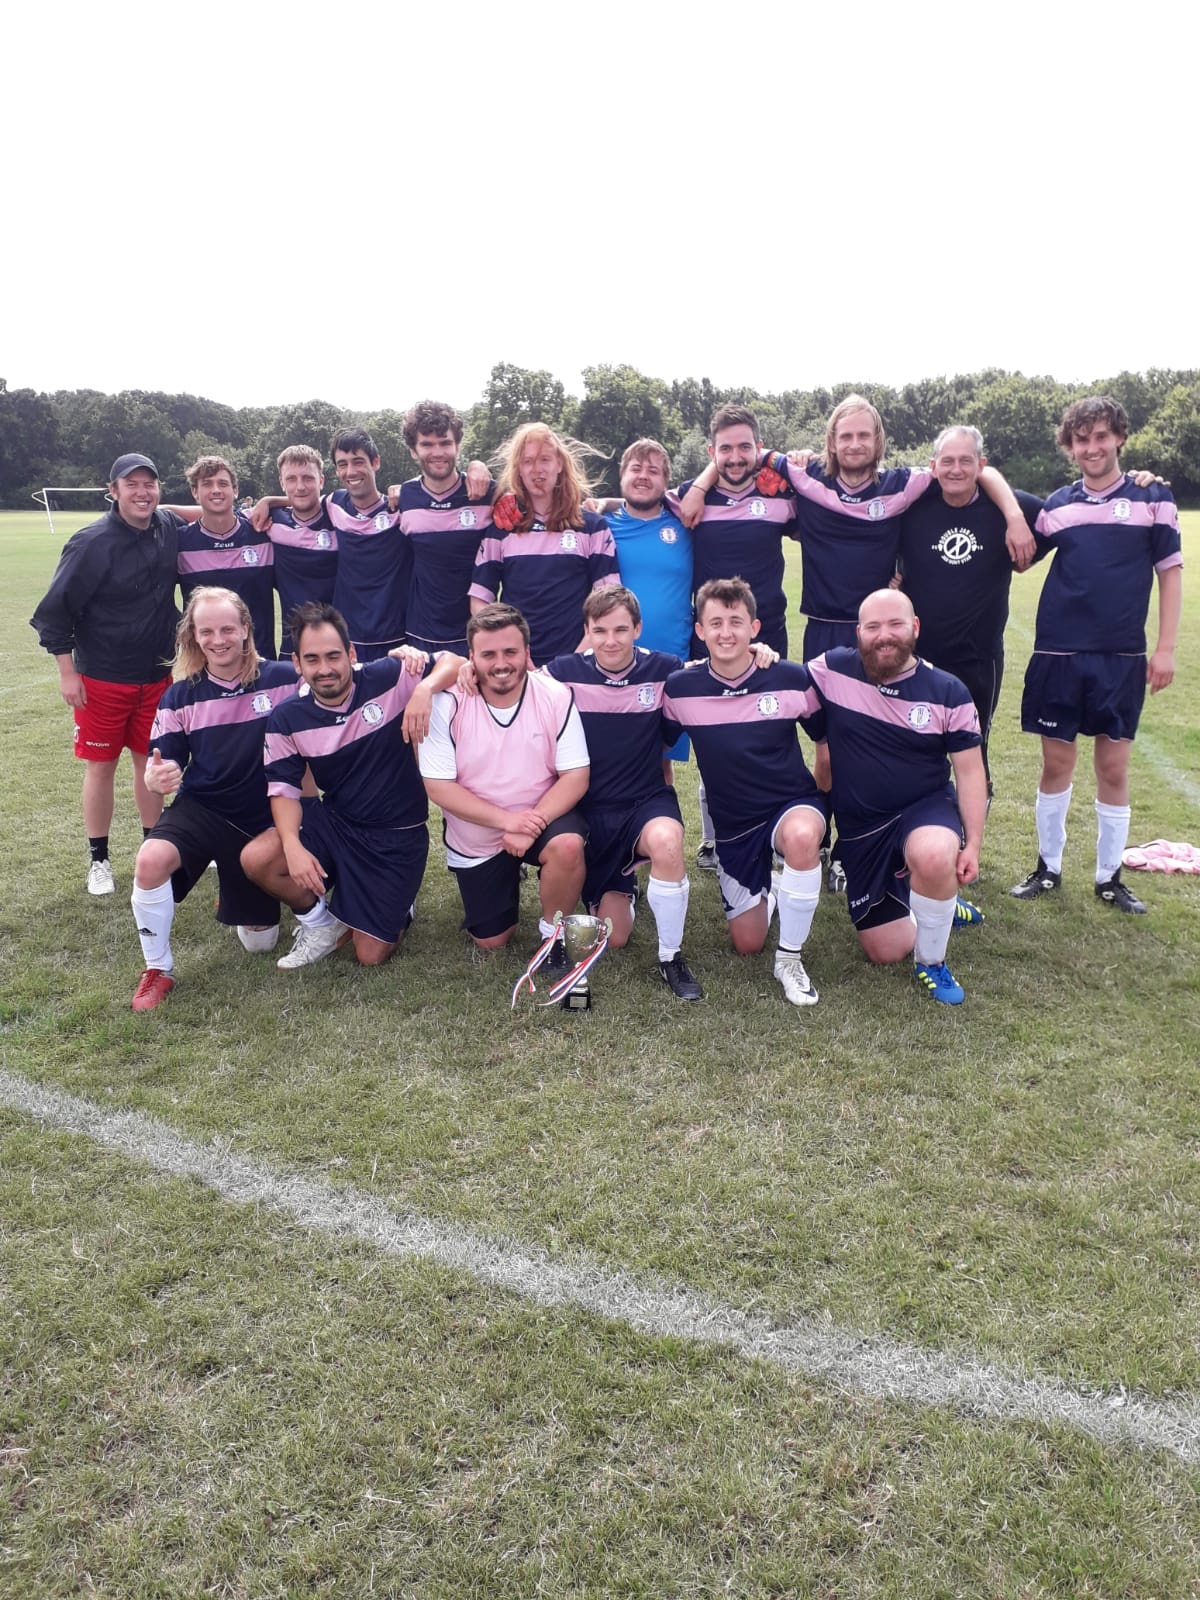 AFC Sporting Greenwich, winners of the A&H International Cup, first trophy of the 2019/20 season after beating the Referees on Penalties.